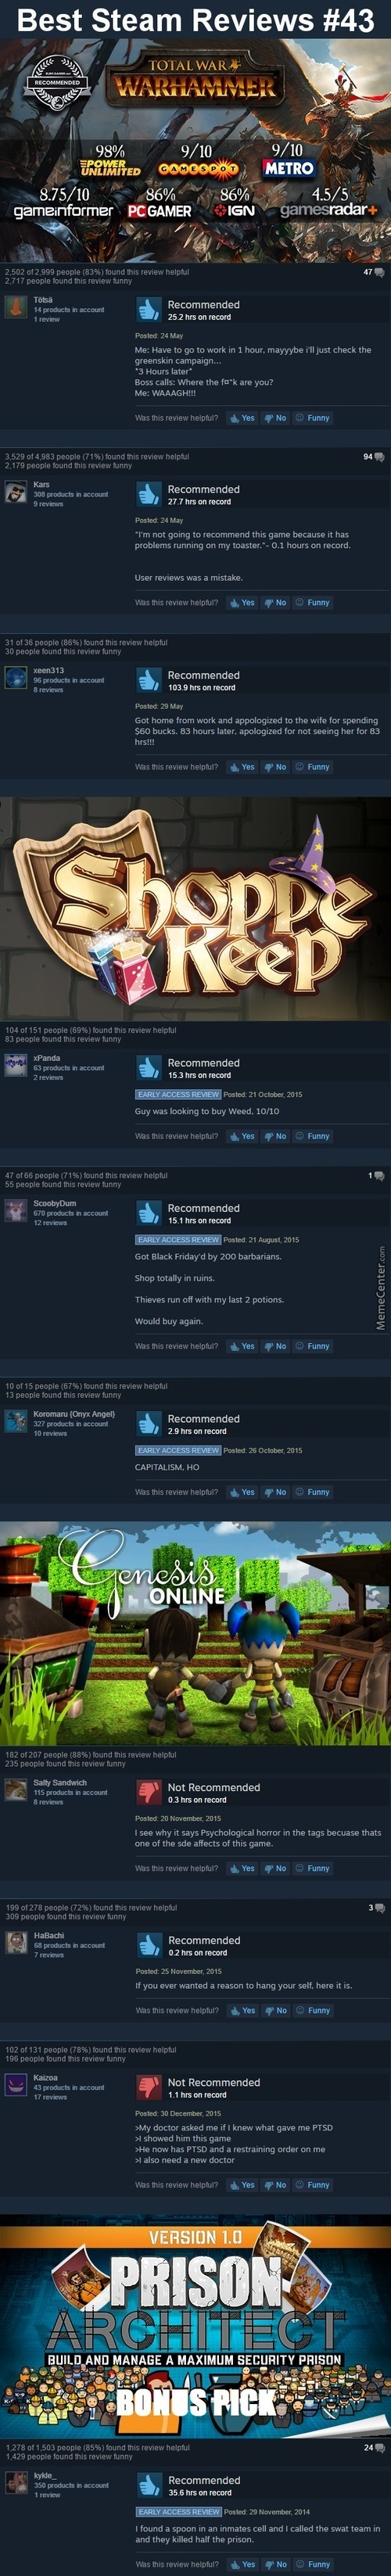 Best Steam Reviews #43 - More Waaaaaaaagh